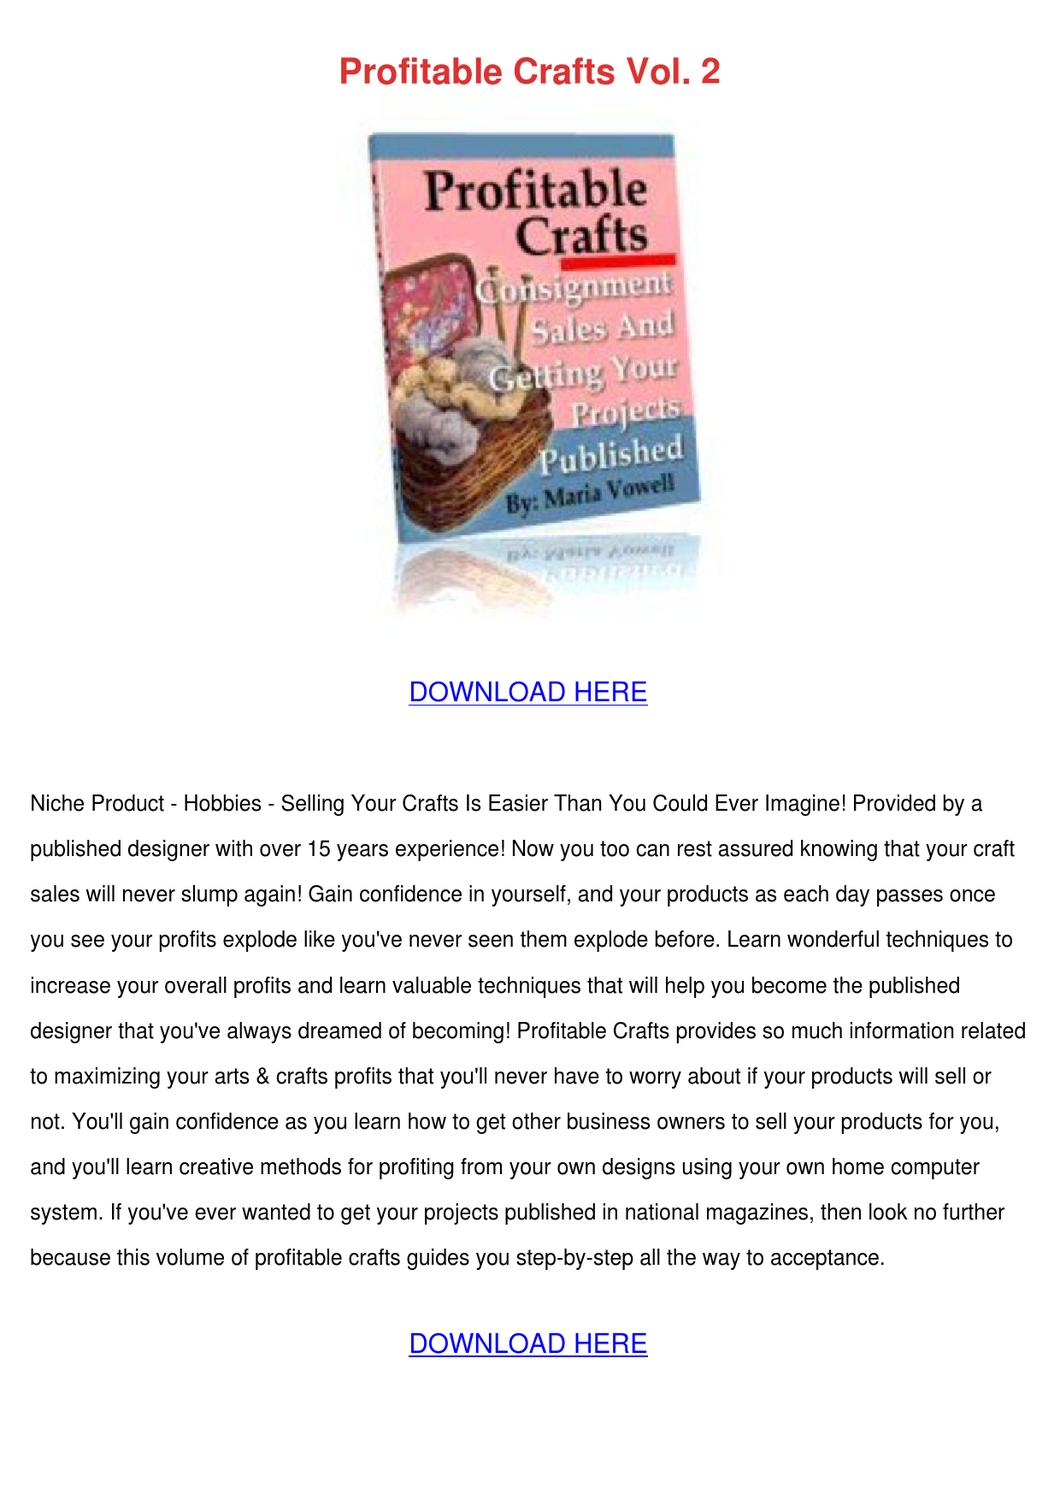 Profitable crafts vol 2 by lillalegg issuu for Profitable crafts